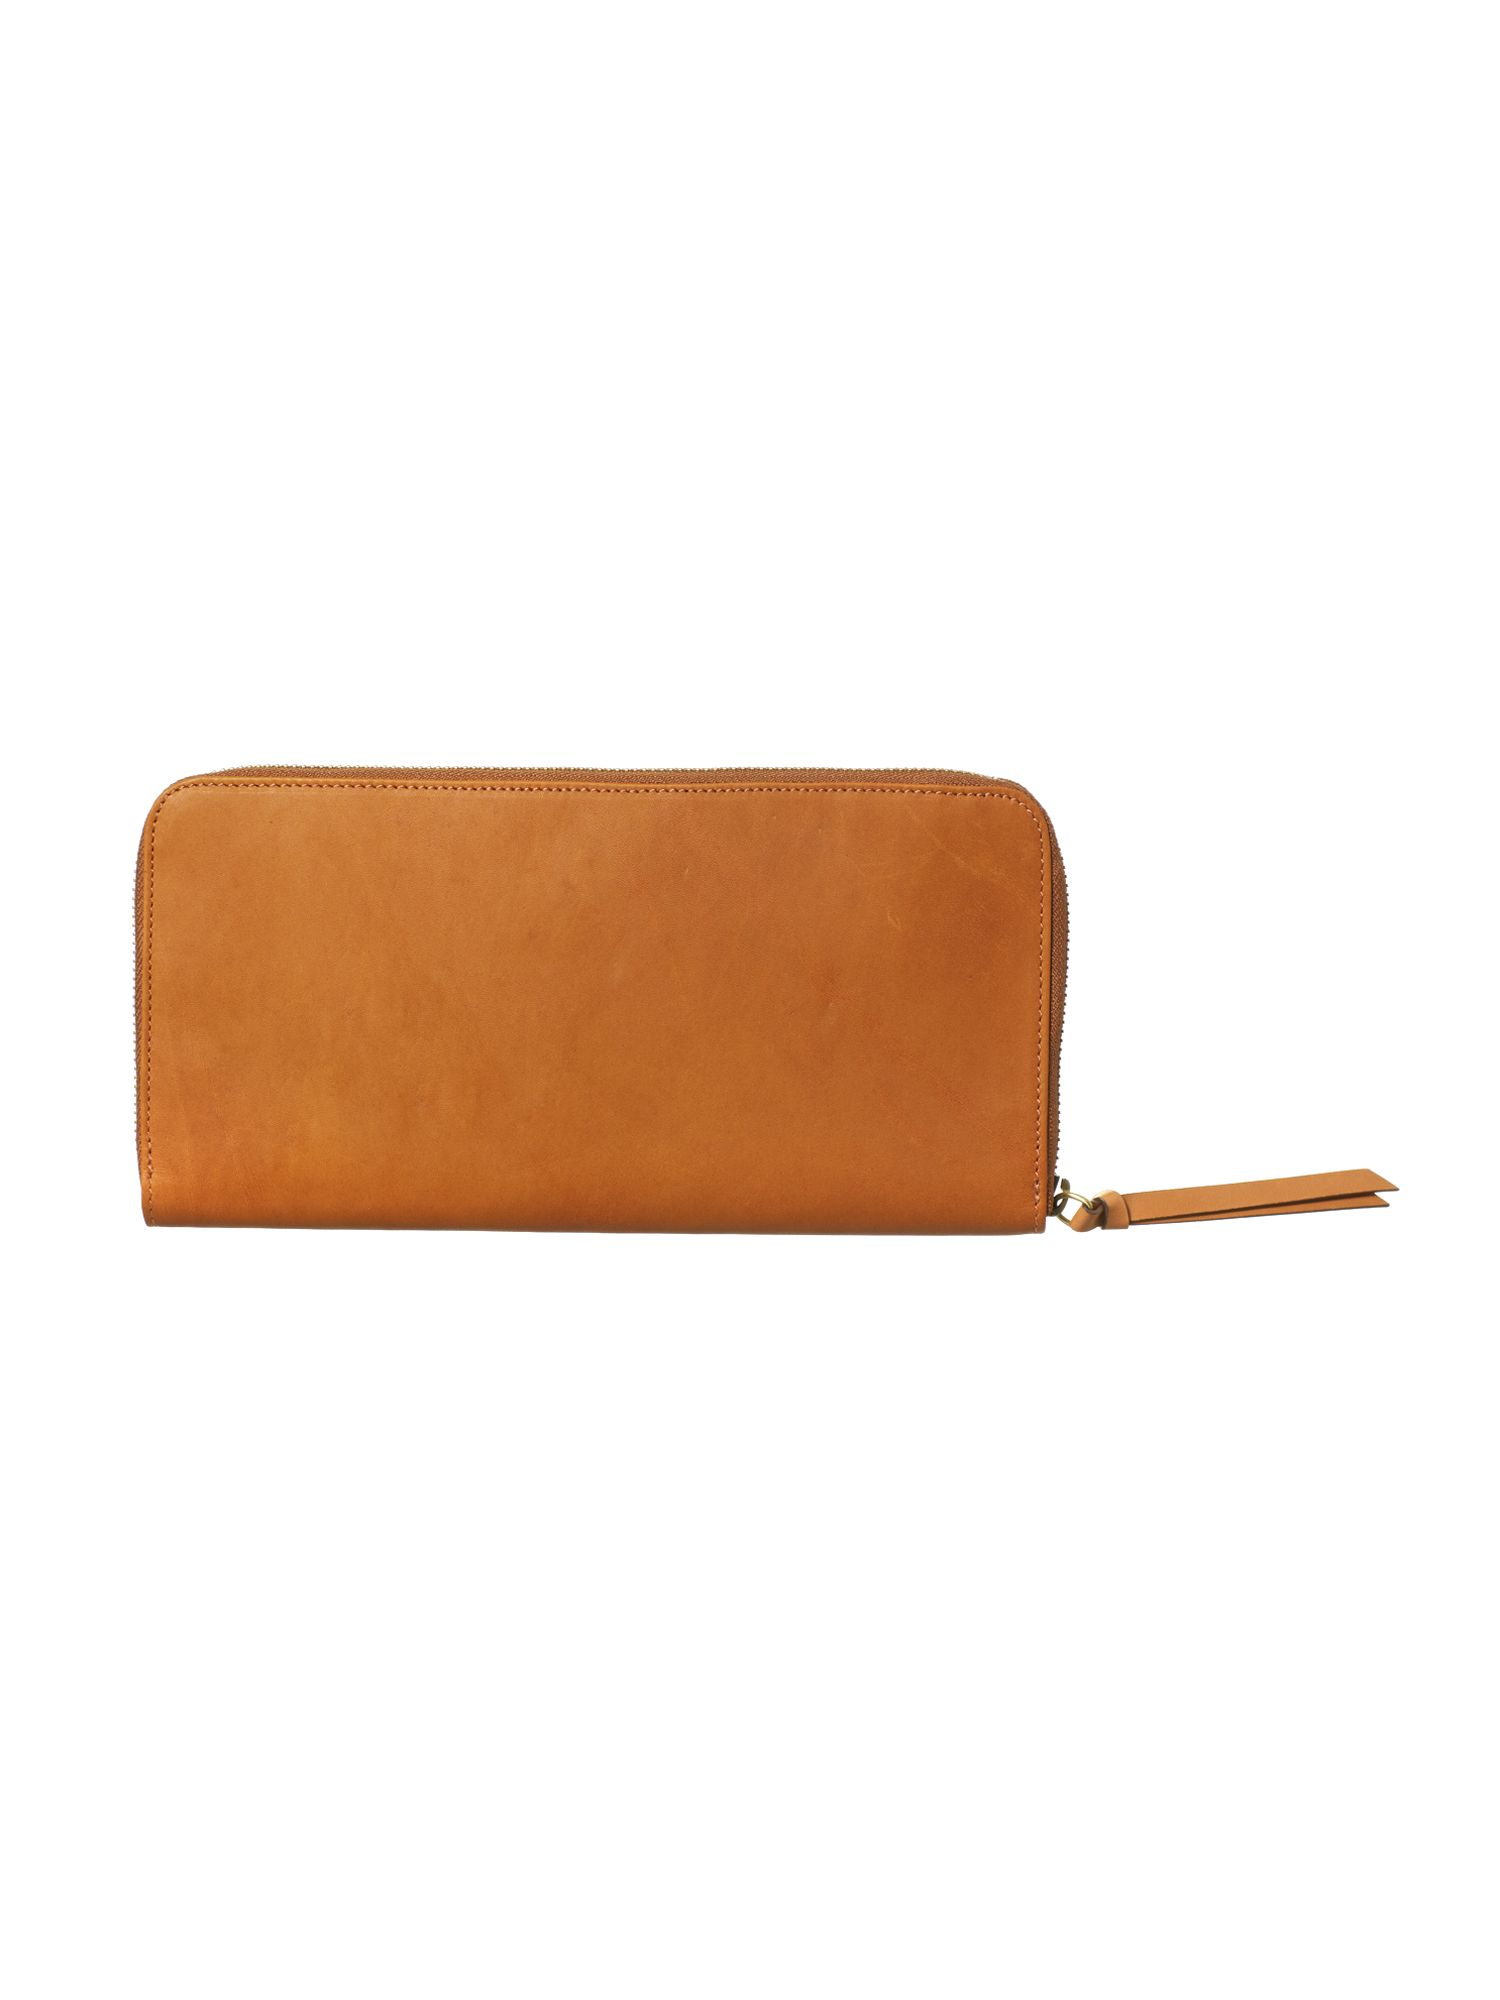 Smooth leather travel wallet